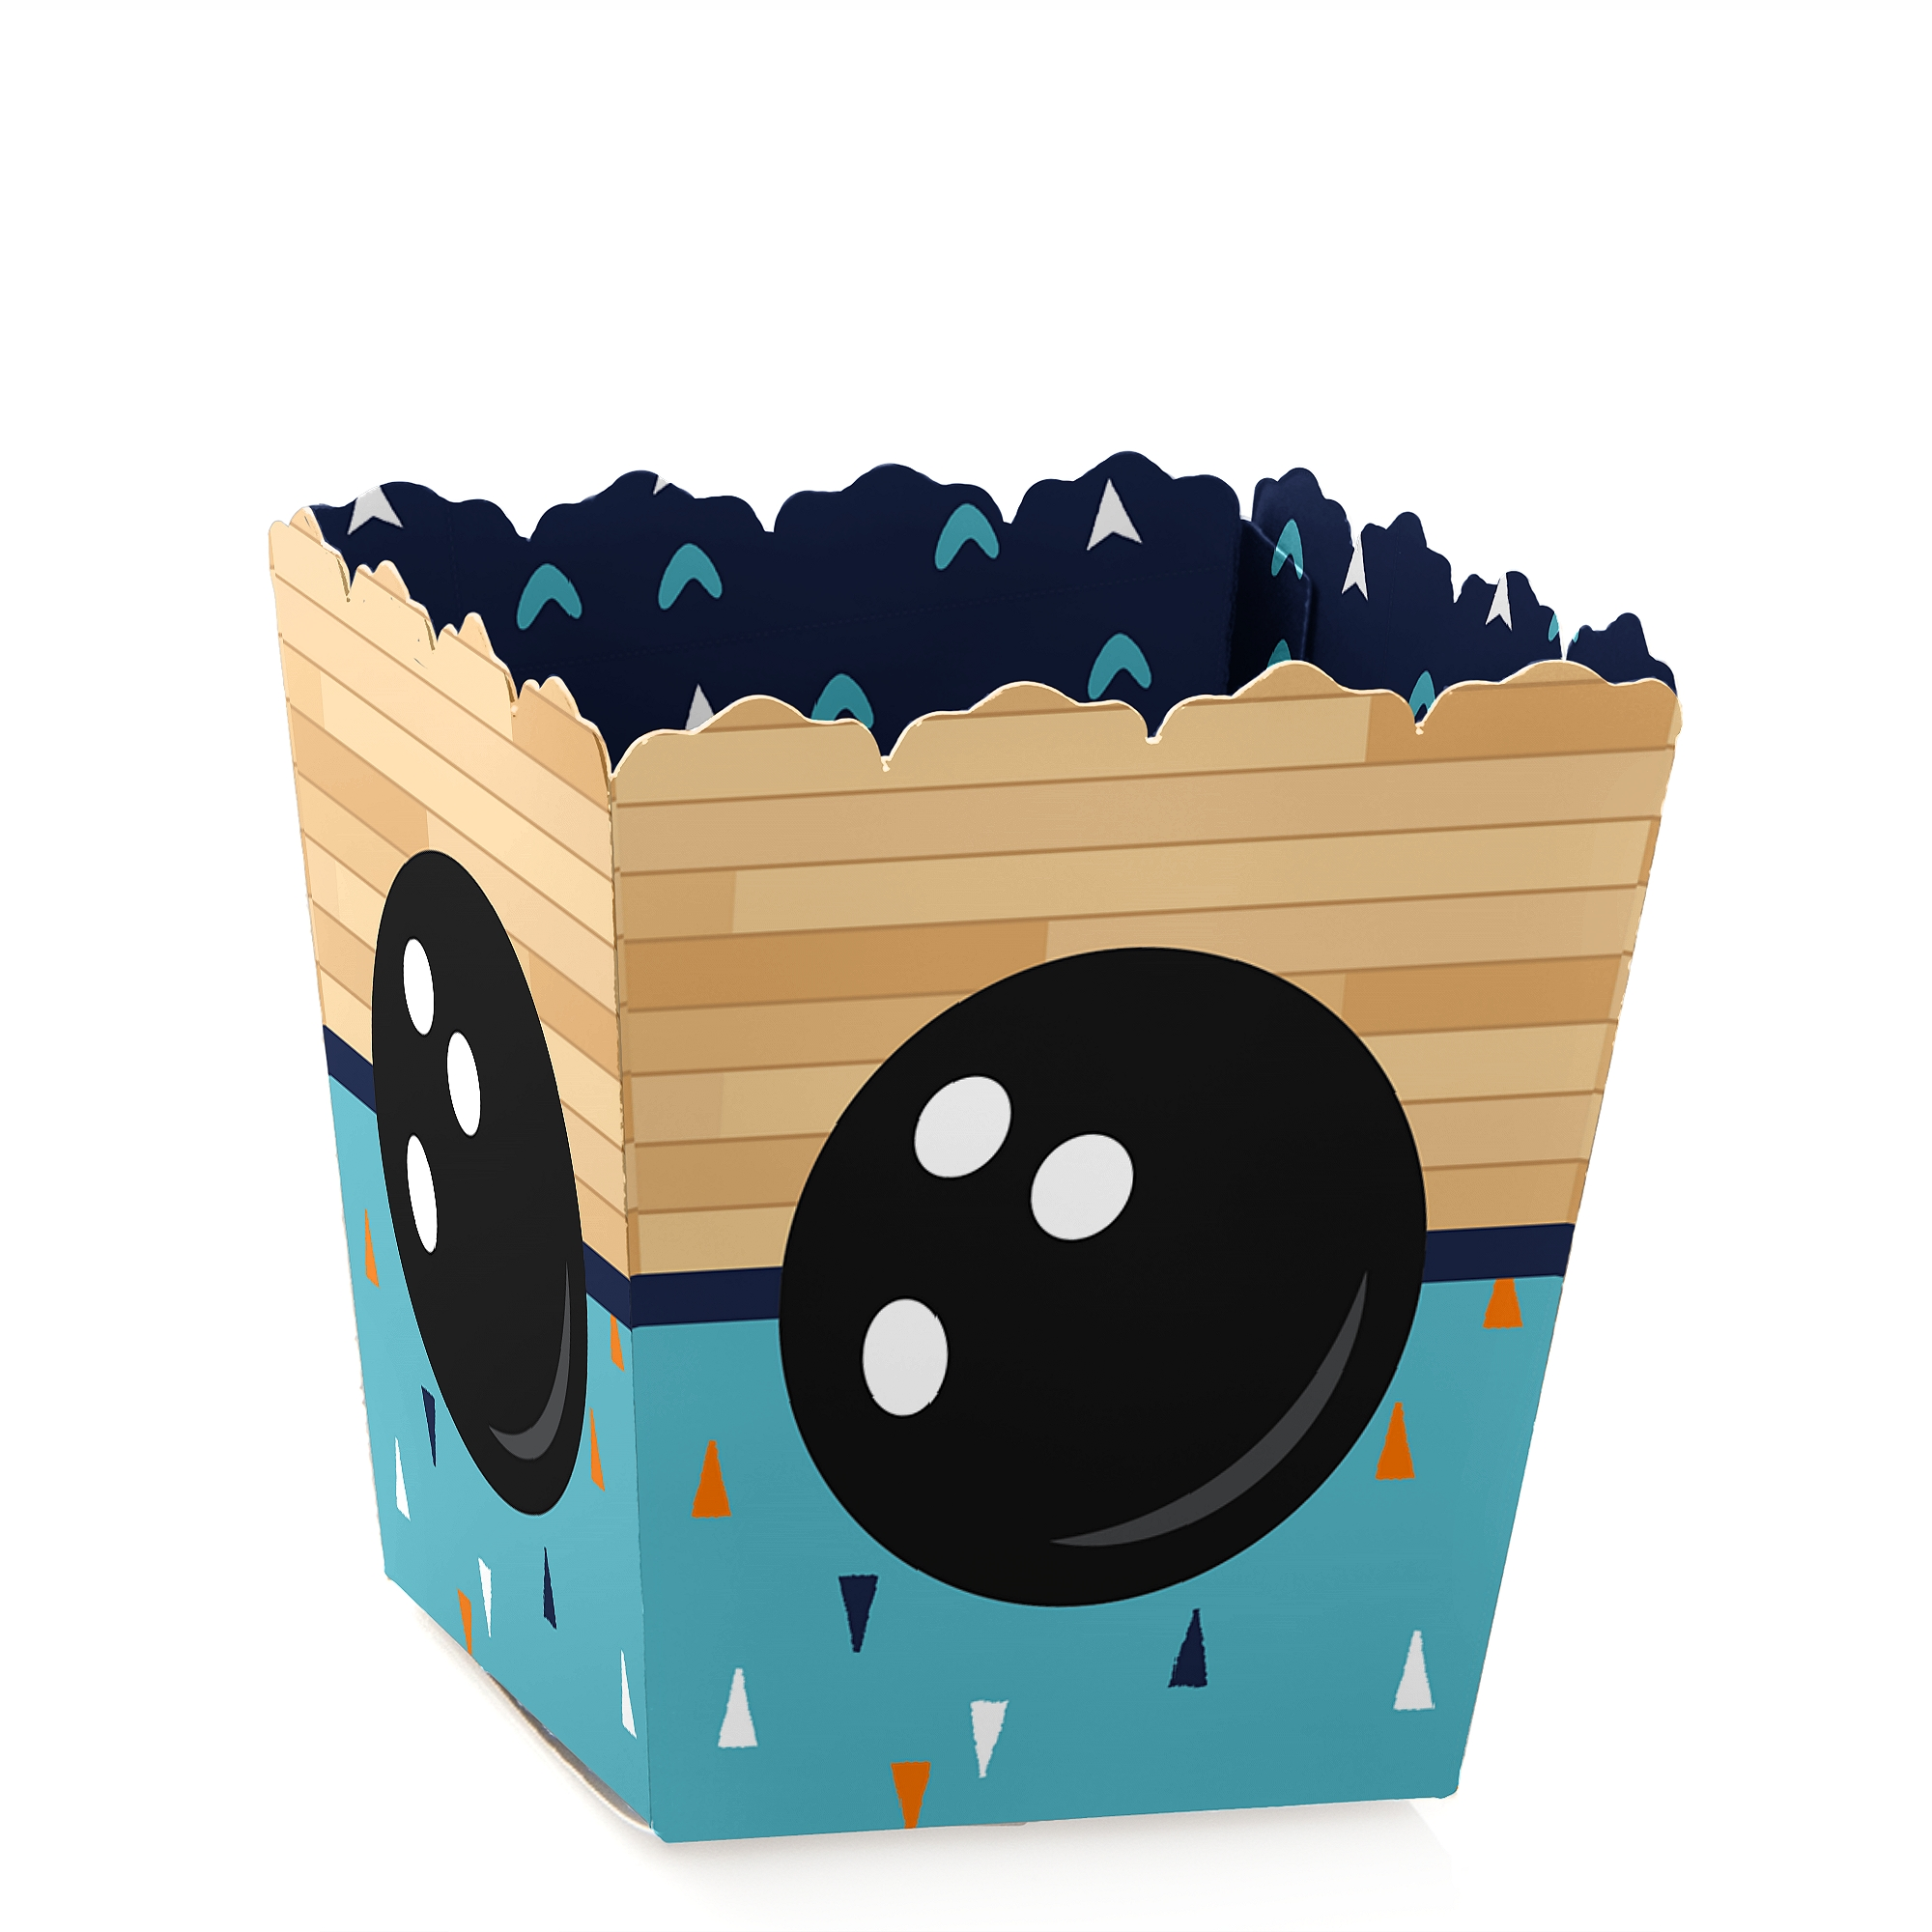 Bowling Party /& Birthday Favor Boxes 12 Pack - Movie Theatre Style Personalized Treat Box Strike Up the Fun Bowling Popcorn Boxes